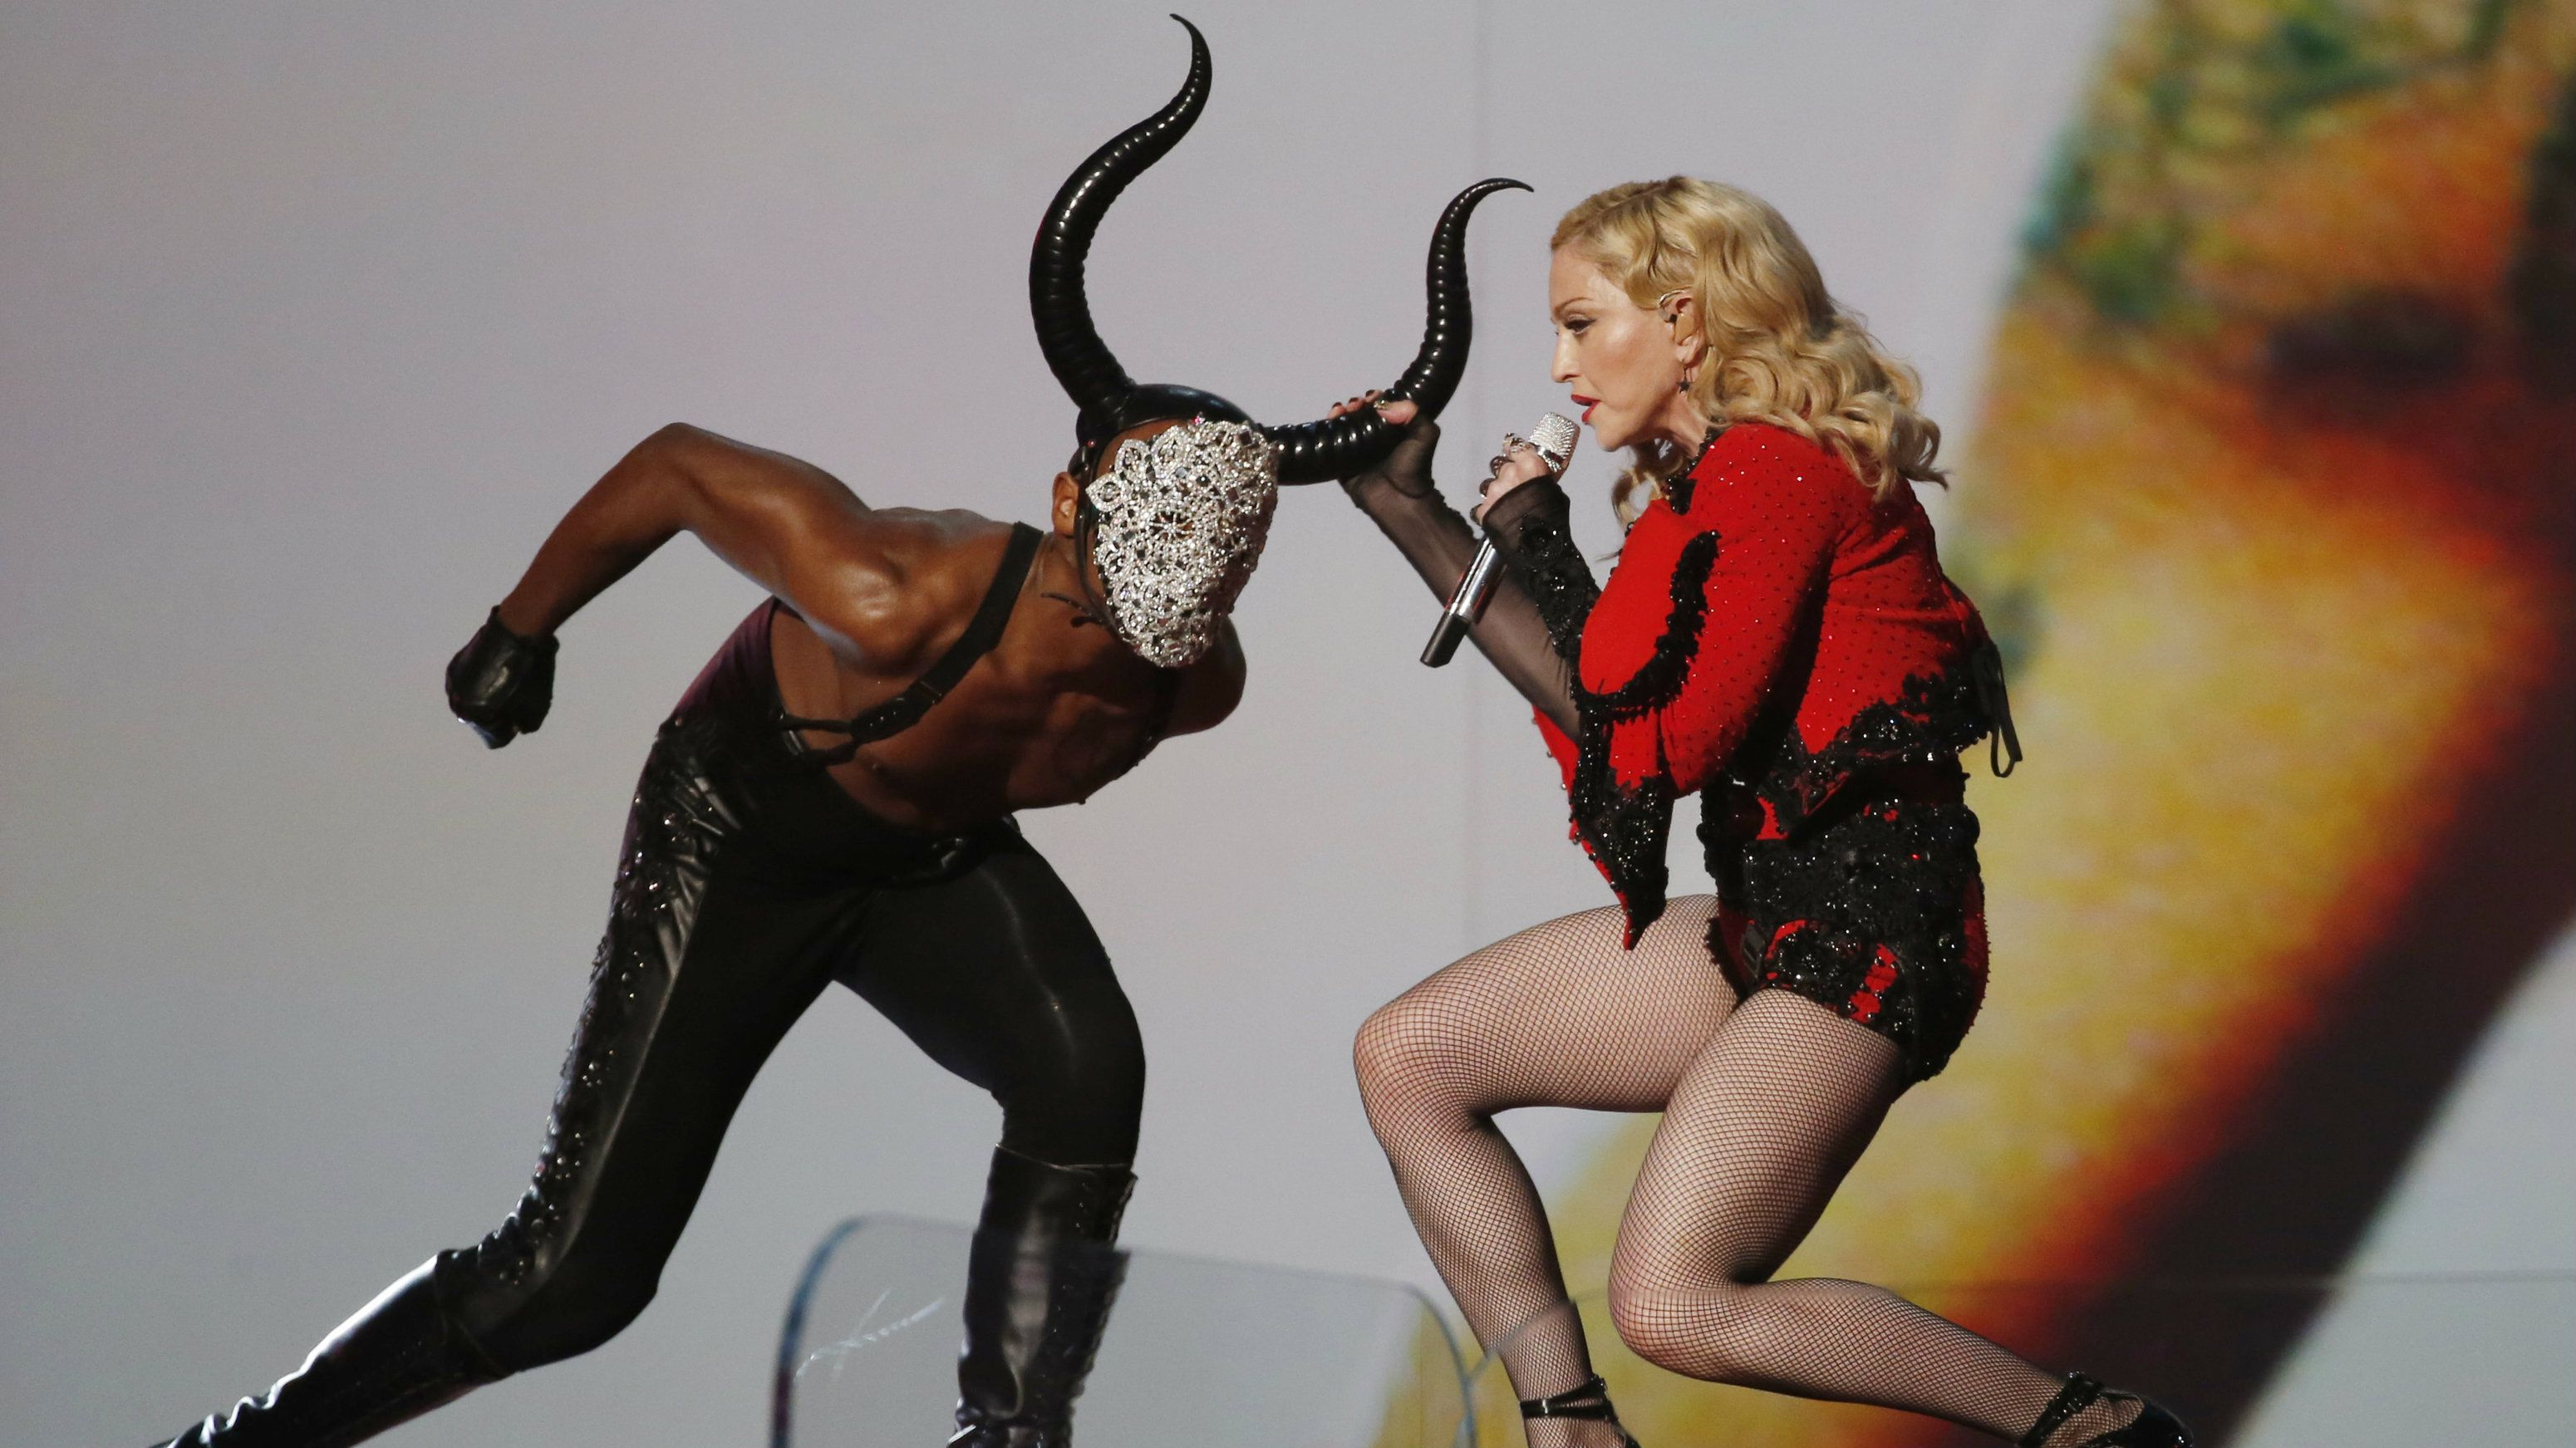 """Madonna performs """"Living for Love"""" at the 57th annual Grammy Awards in Los Angeles, California February 8, 2015."""